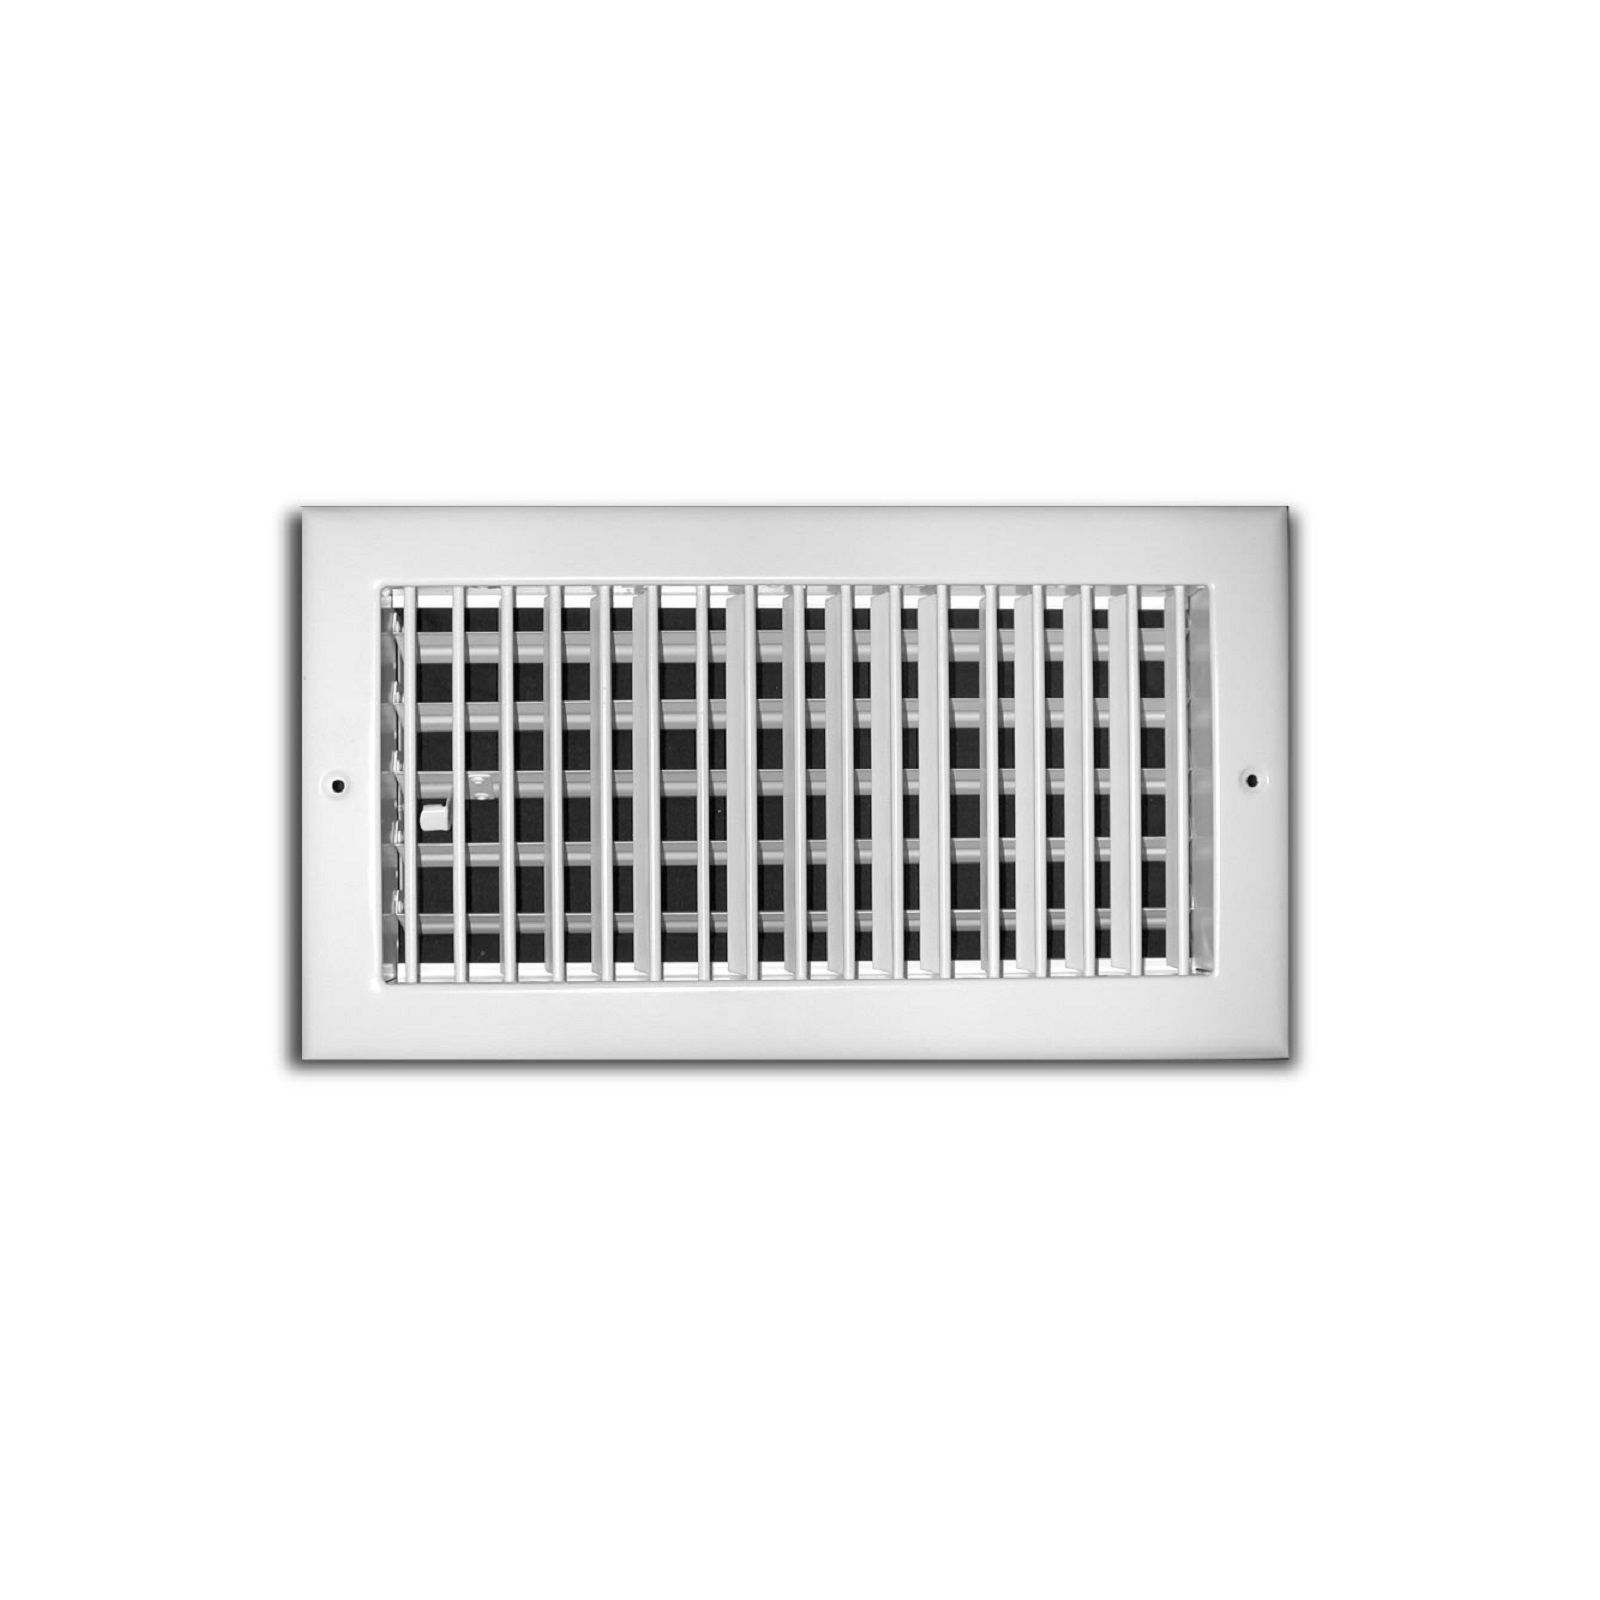 "TRUaire 210VM 18X08 - Steel Adjustable 1-Way Wall/Ceiling Register With Multi Shutter Damper, White, 18"" X 08"""